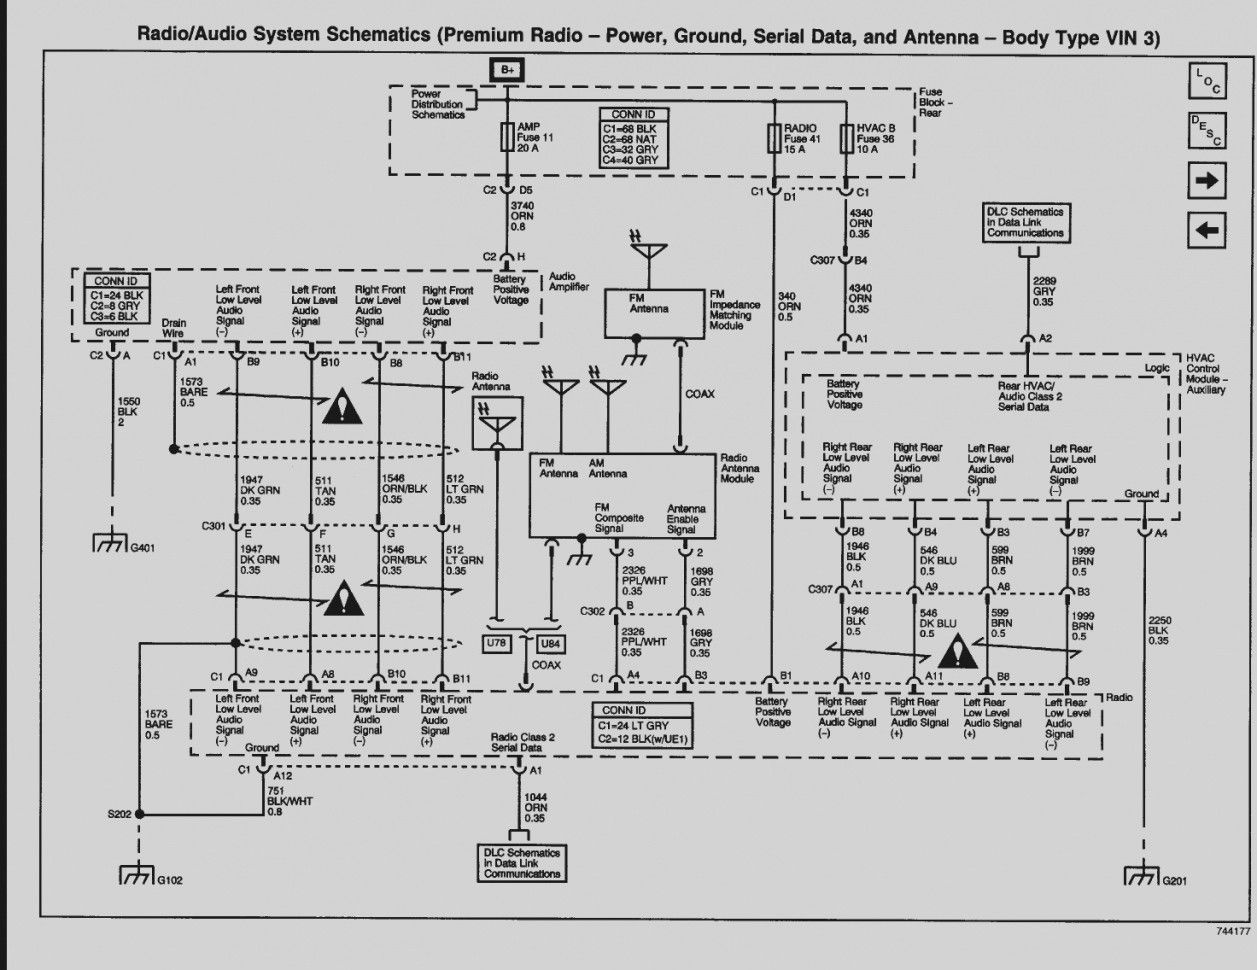 2005 Gmc C5500 Radio Wiring Diagram Wiring Diagram Mute White Mute White Bowlingronta It